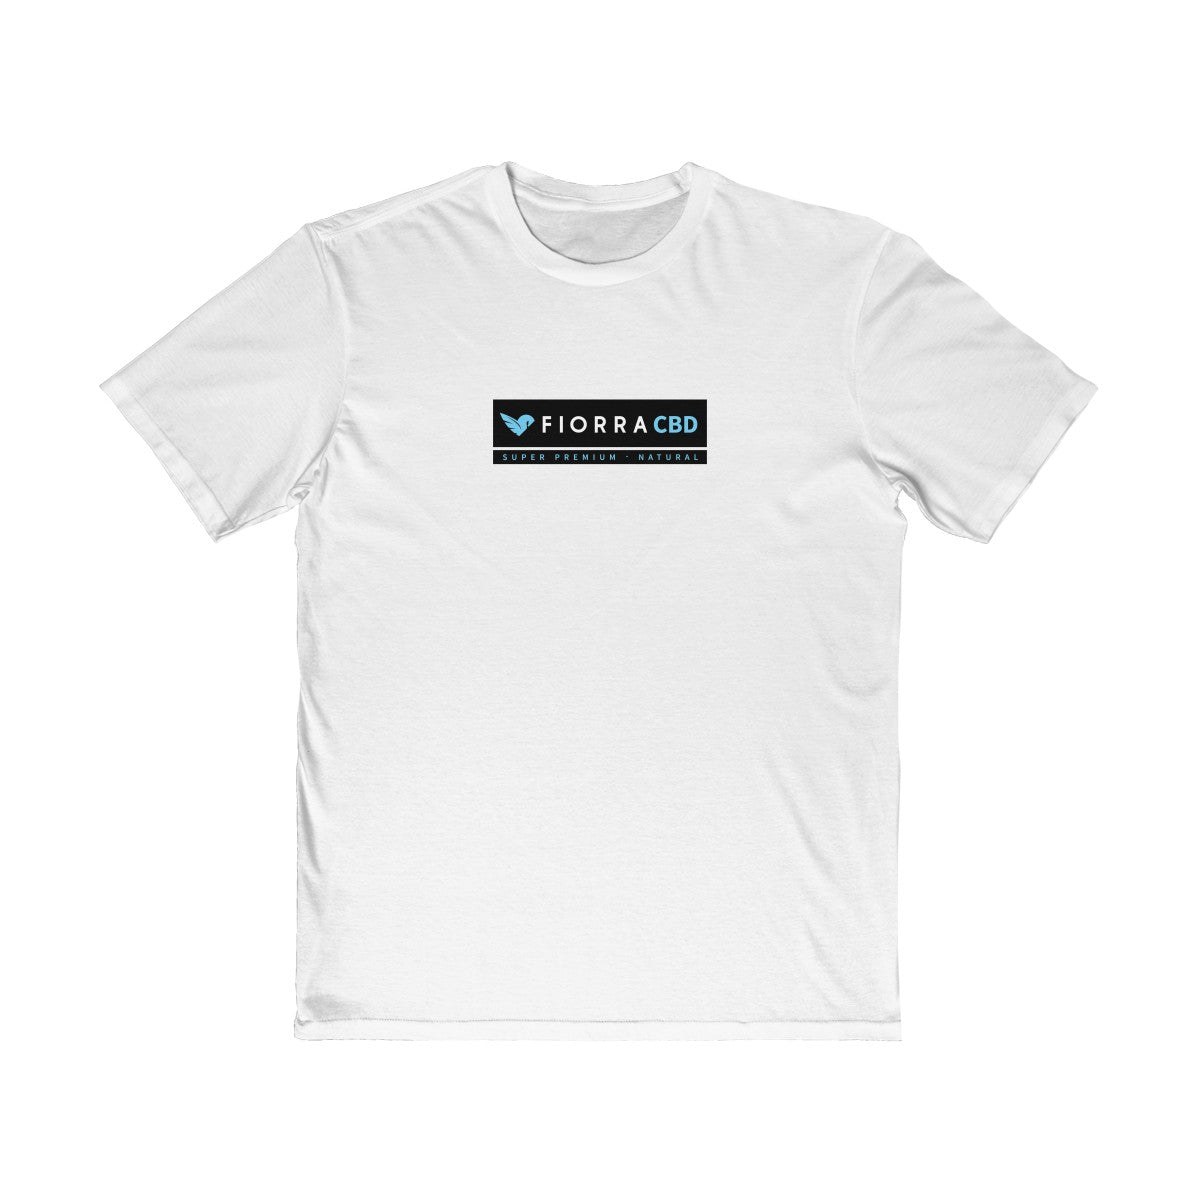 FIORRA CBD Men's Daily Tee